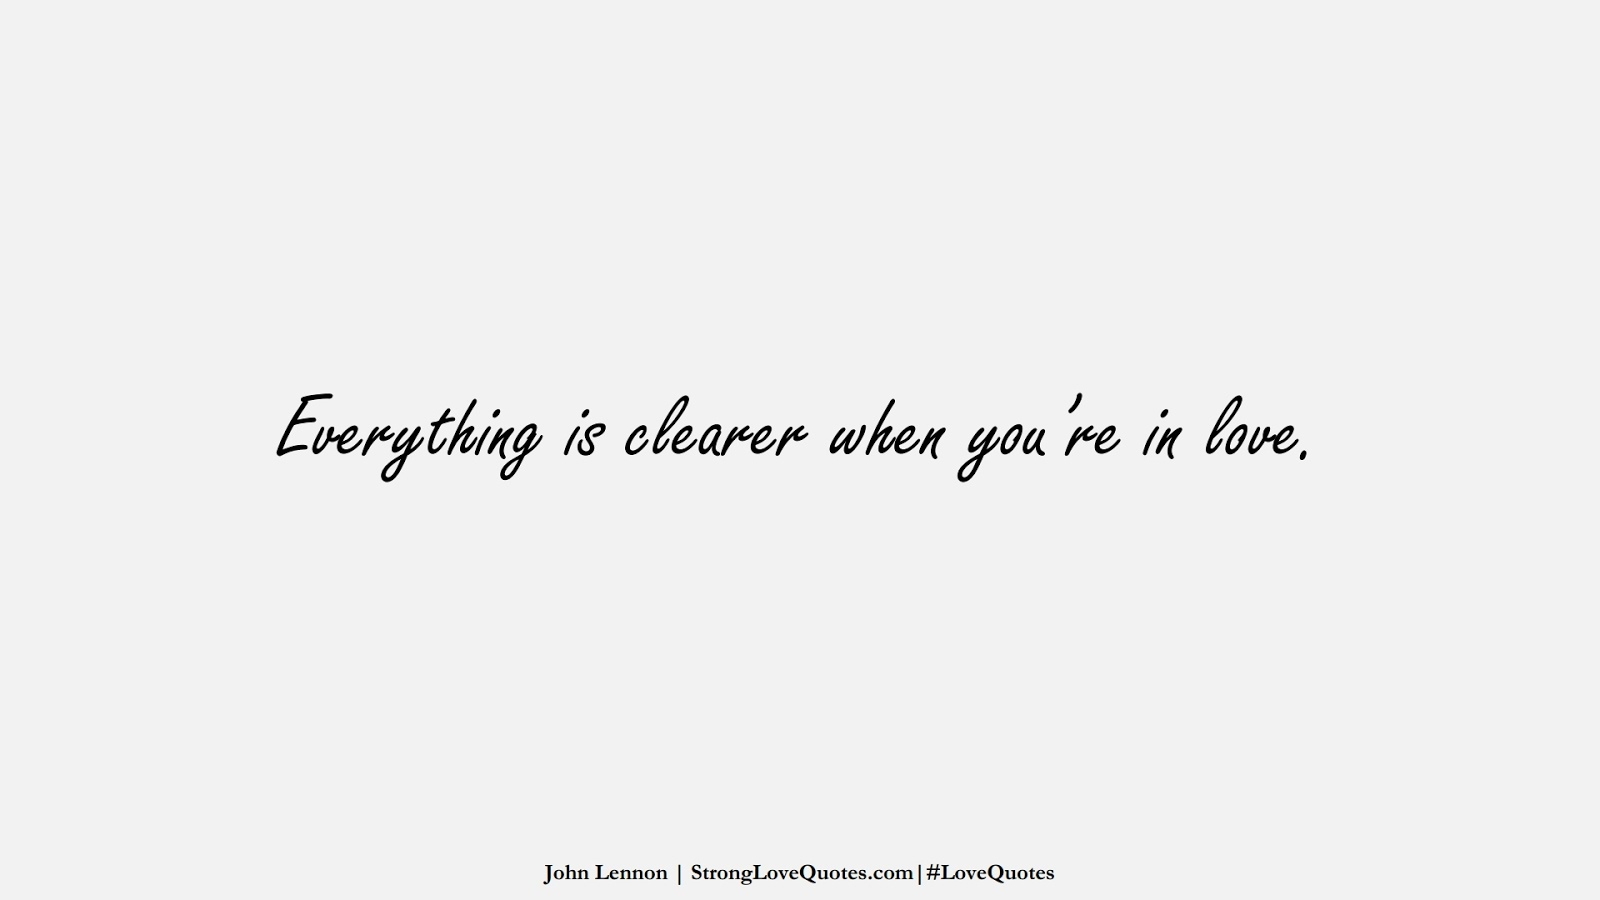 Everything is clearer when you're in love. (John Lennon);  #LoveQuotes